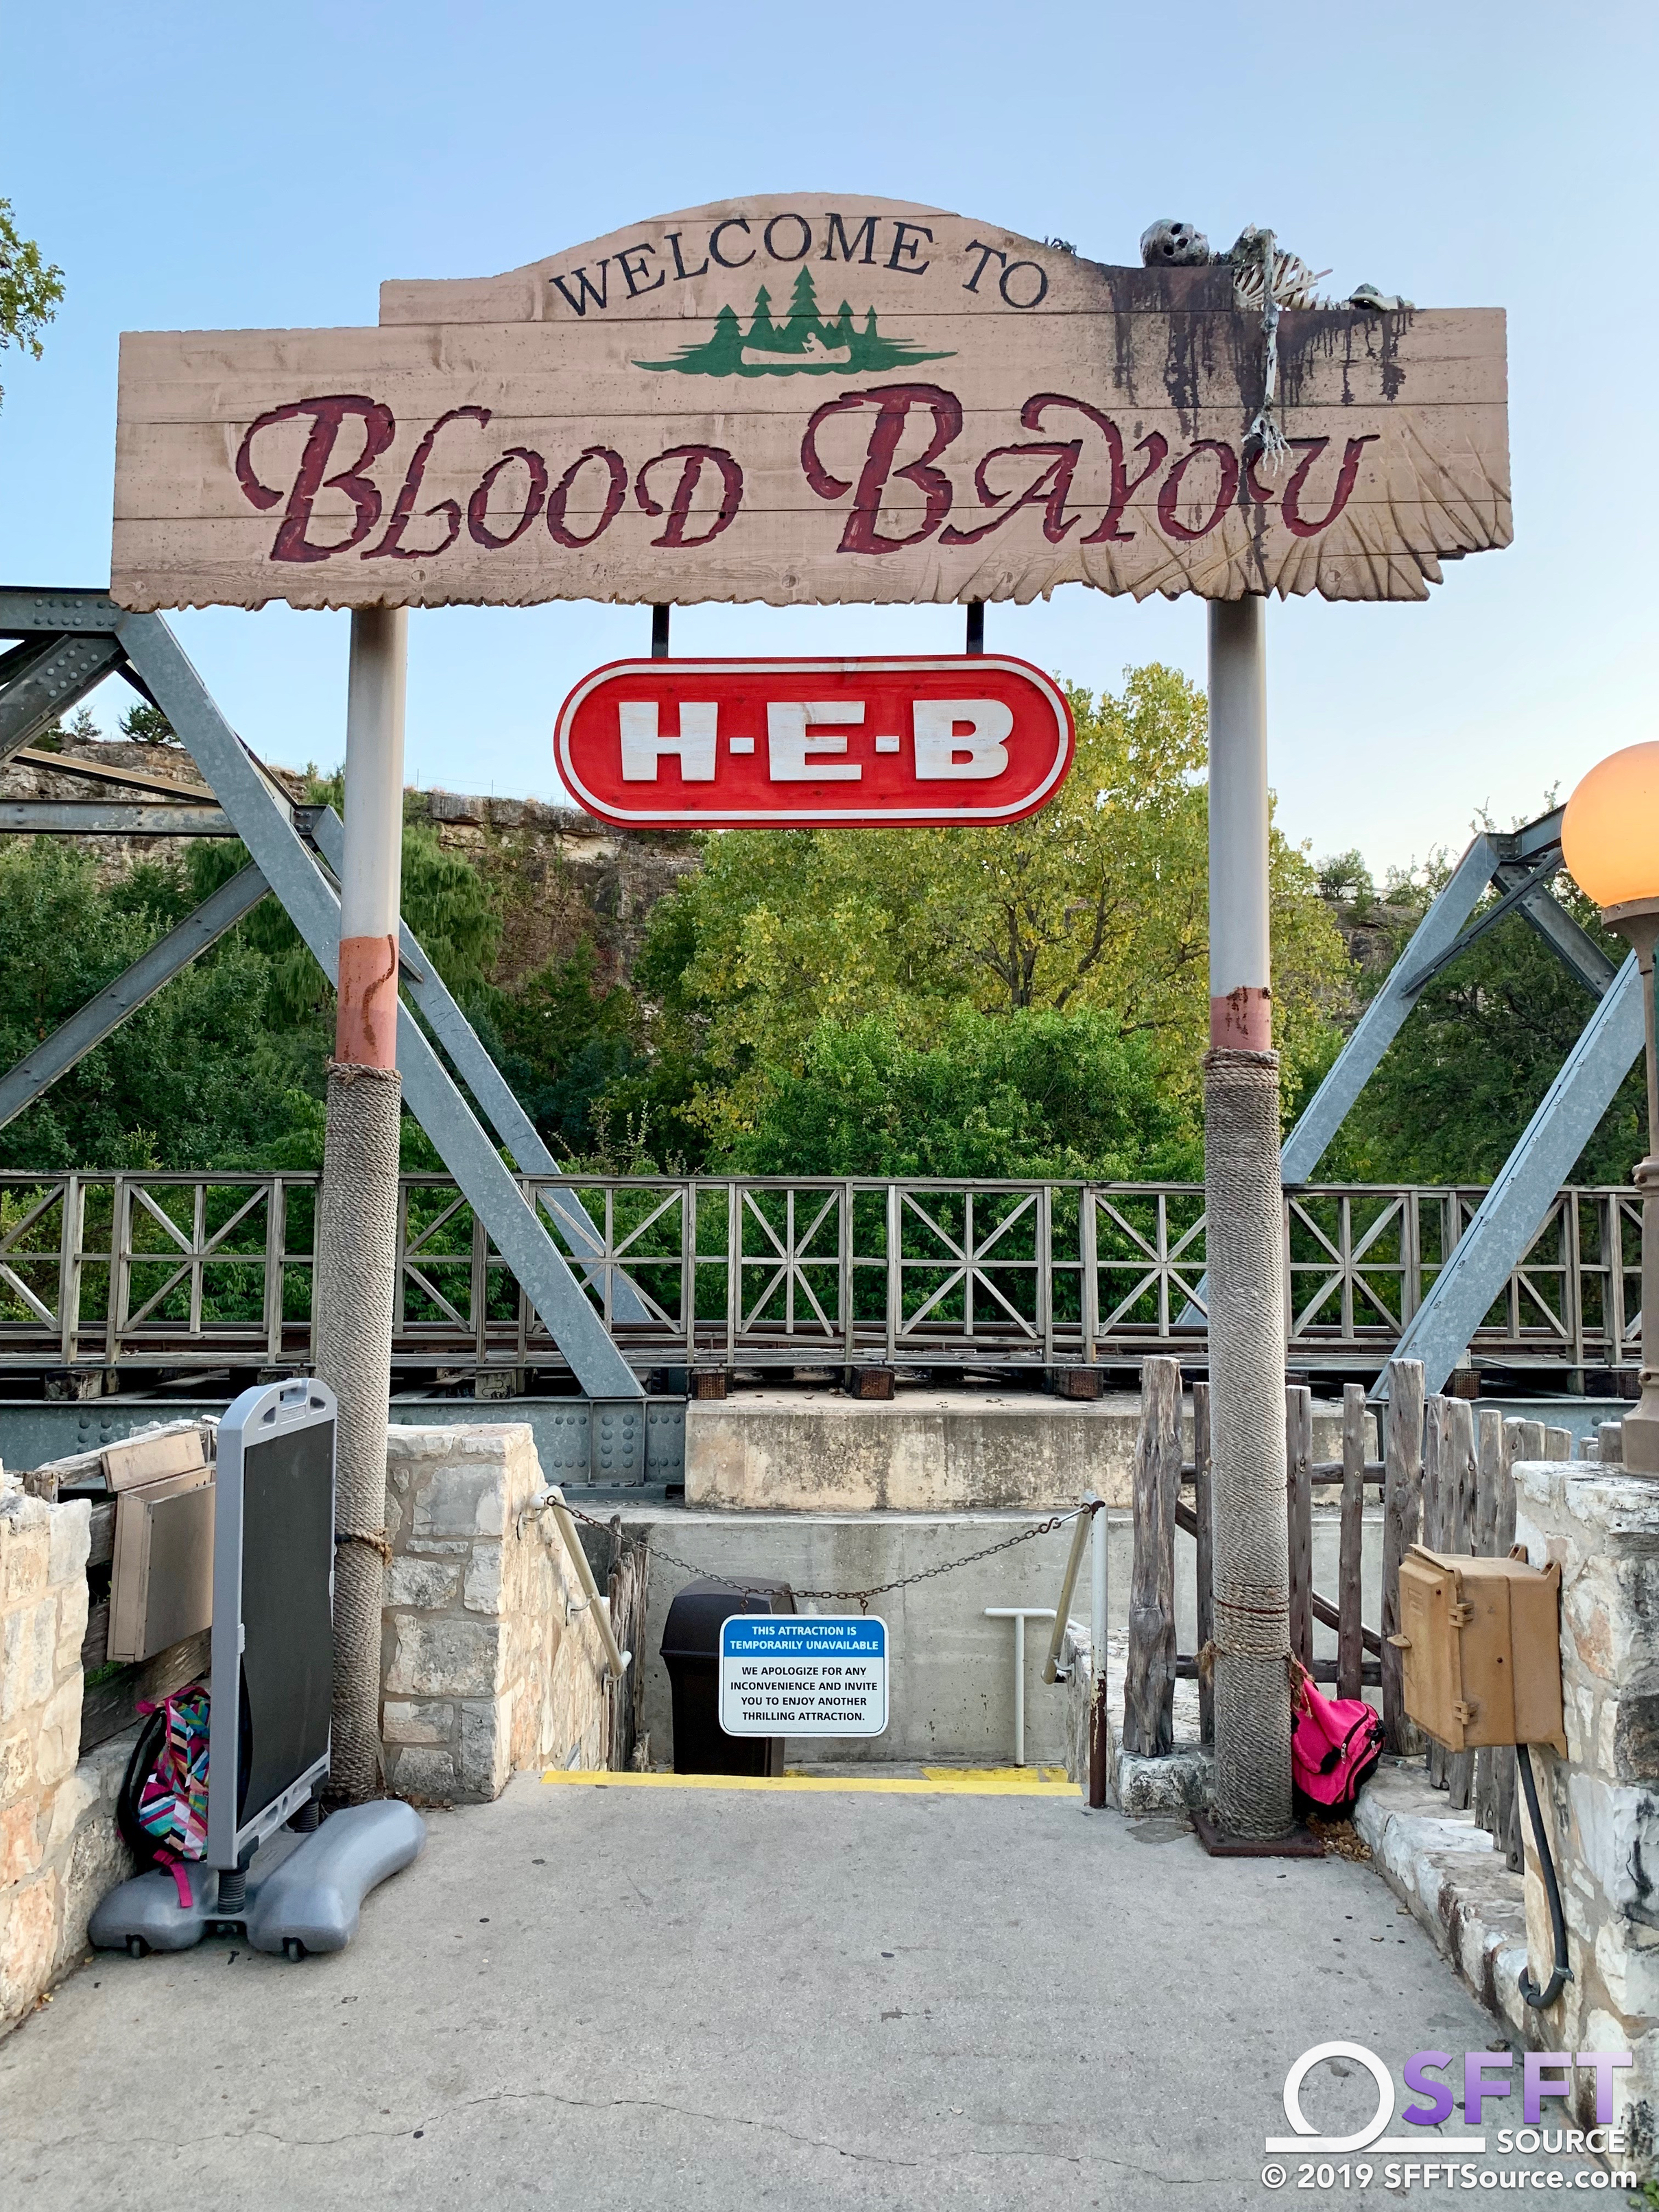 The Blood Bayou haunted house, located in the Gully Washer queue, returns for 2019.